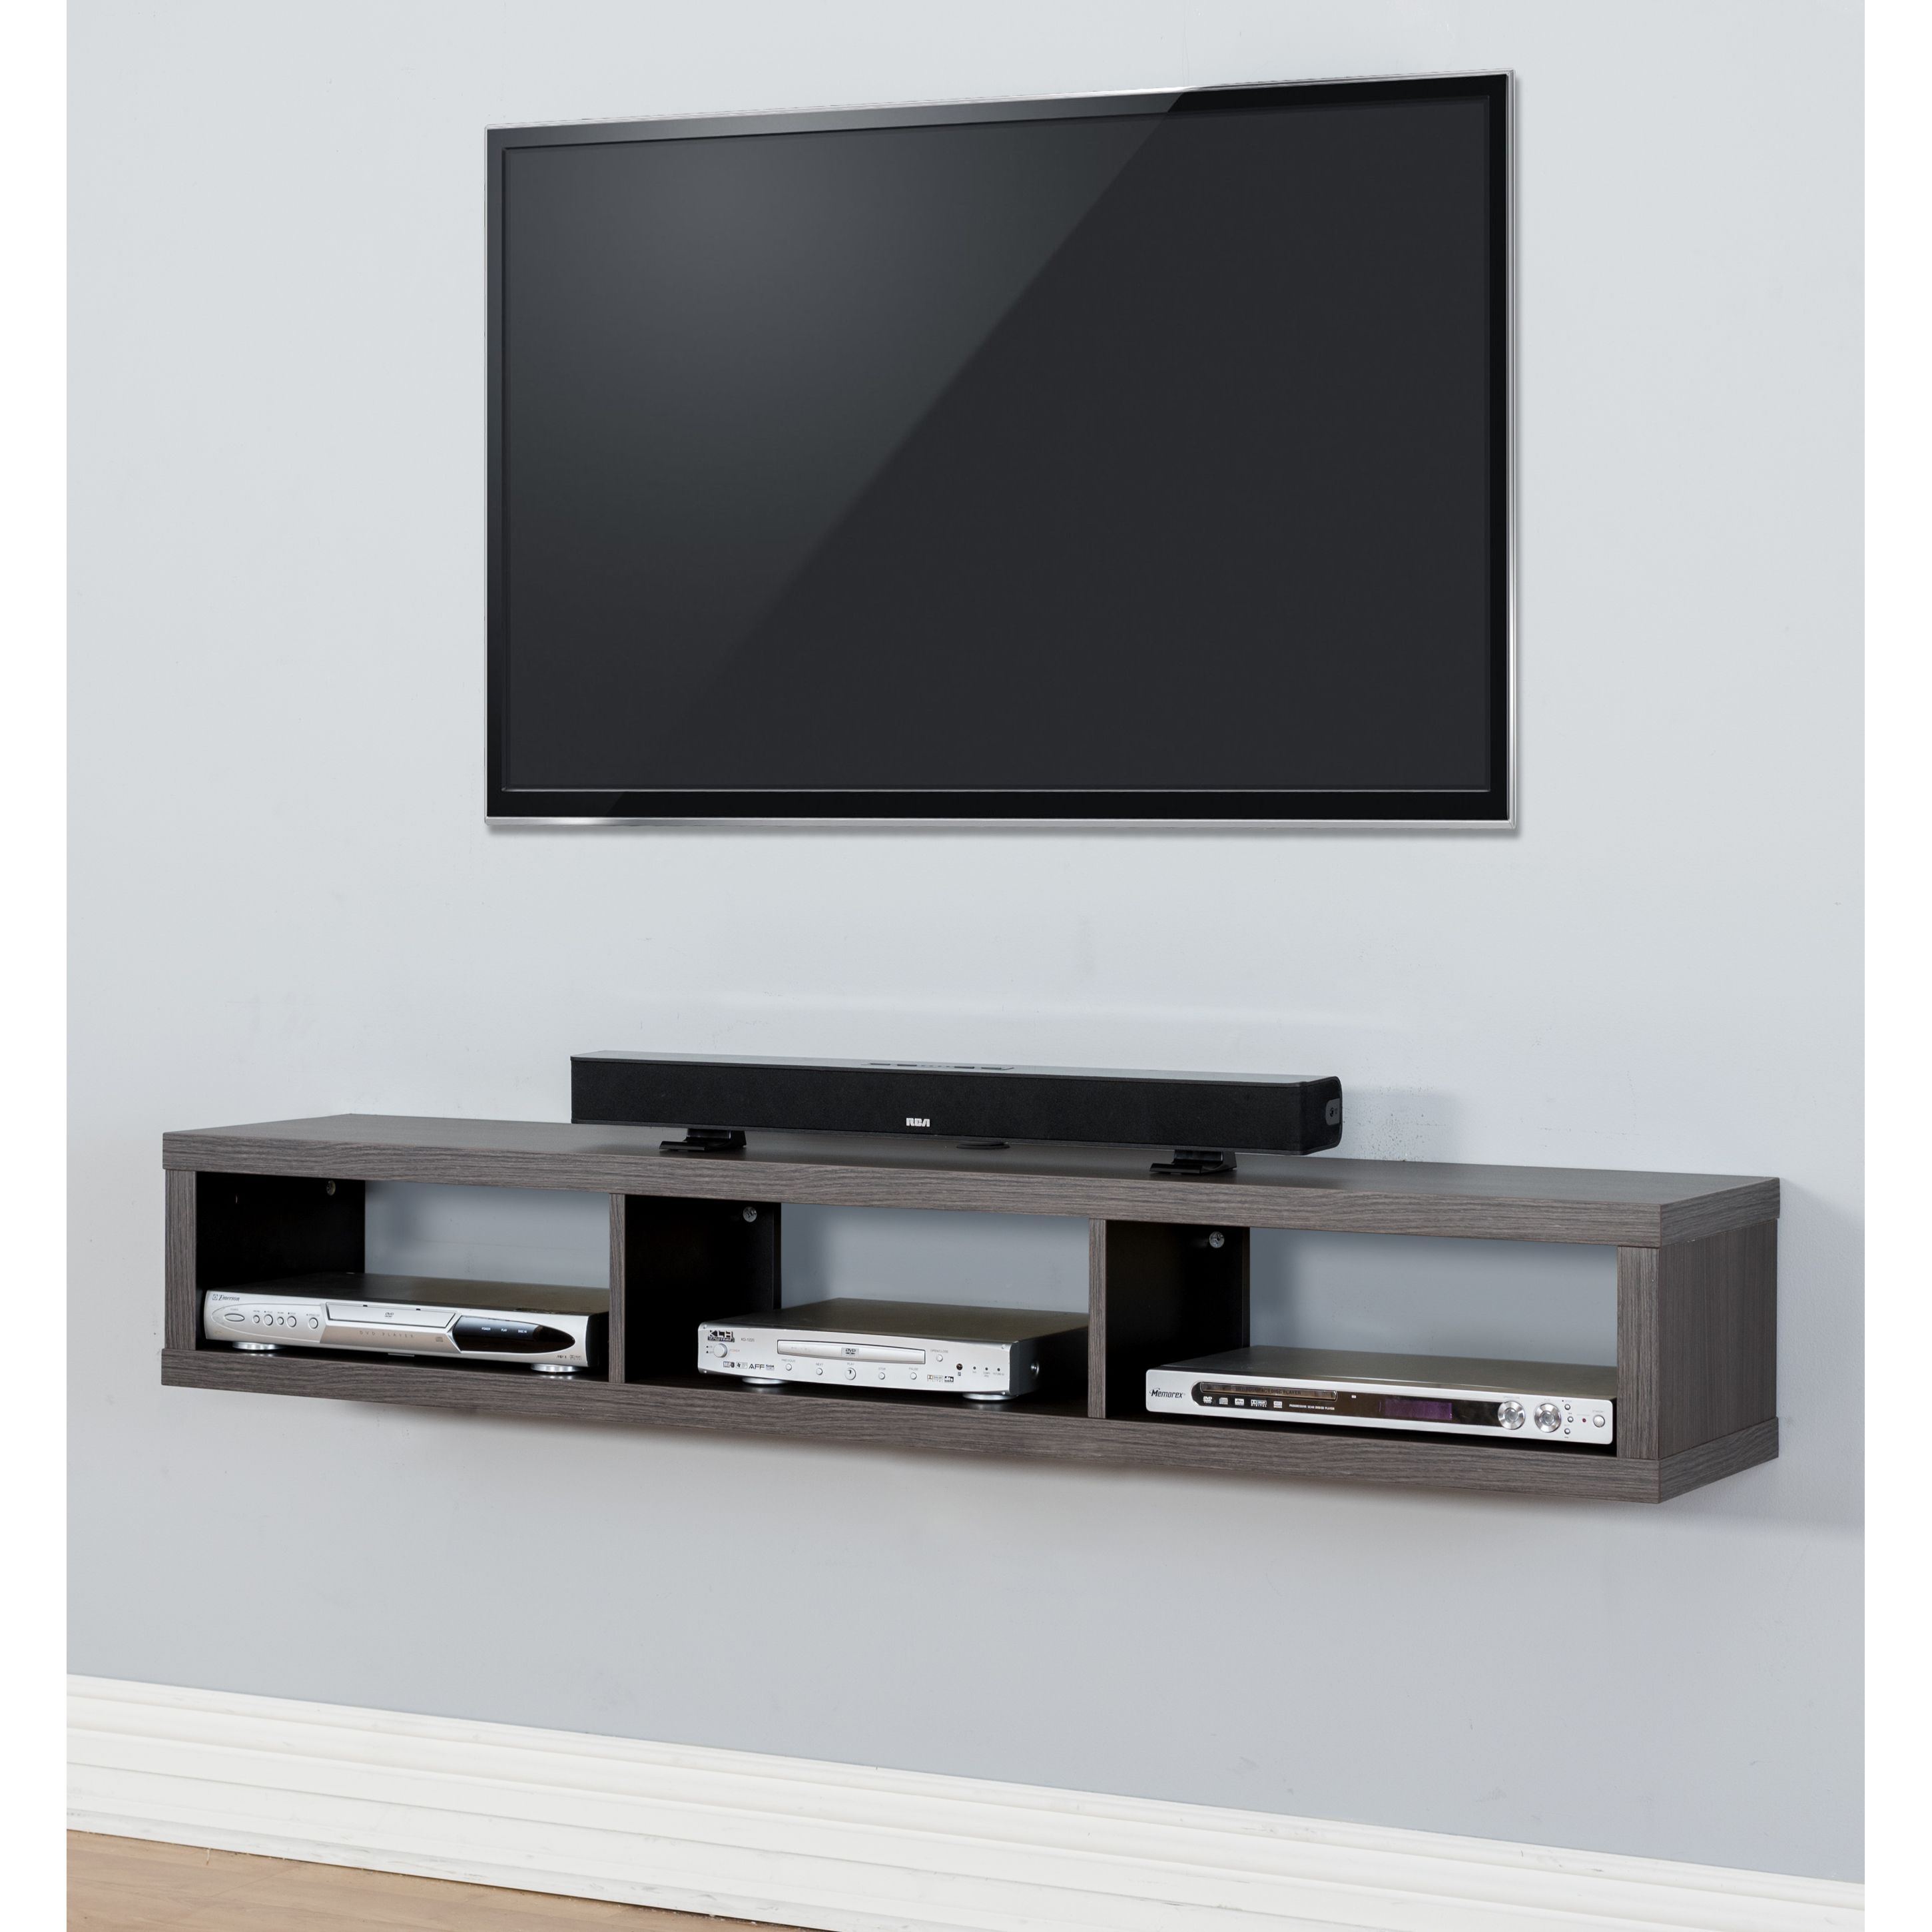 Thin 60 Inch Wall Mount Tv Console Wall Mounted Tv Console Wall